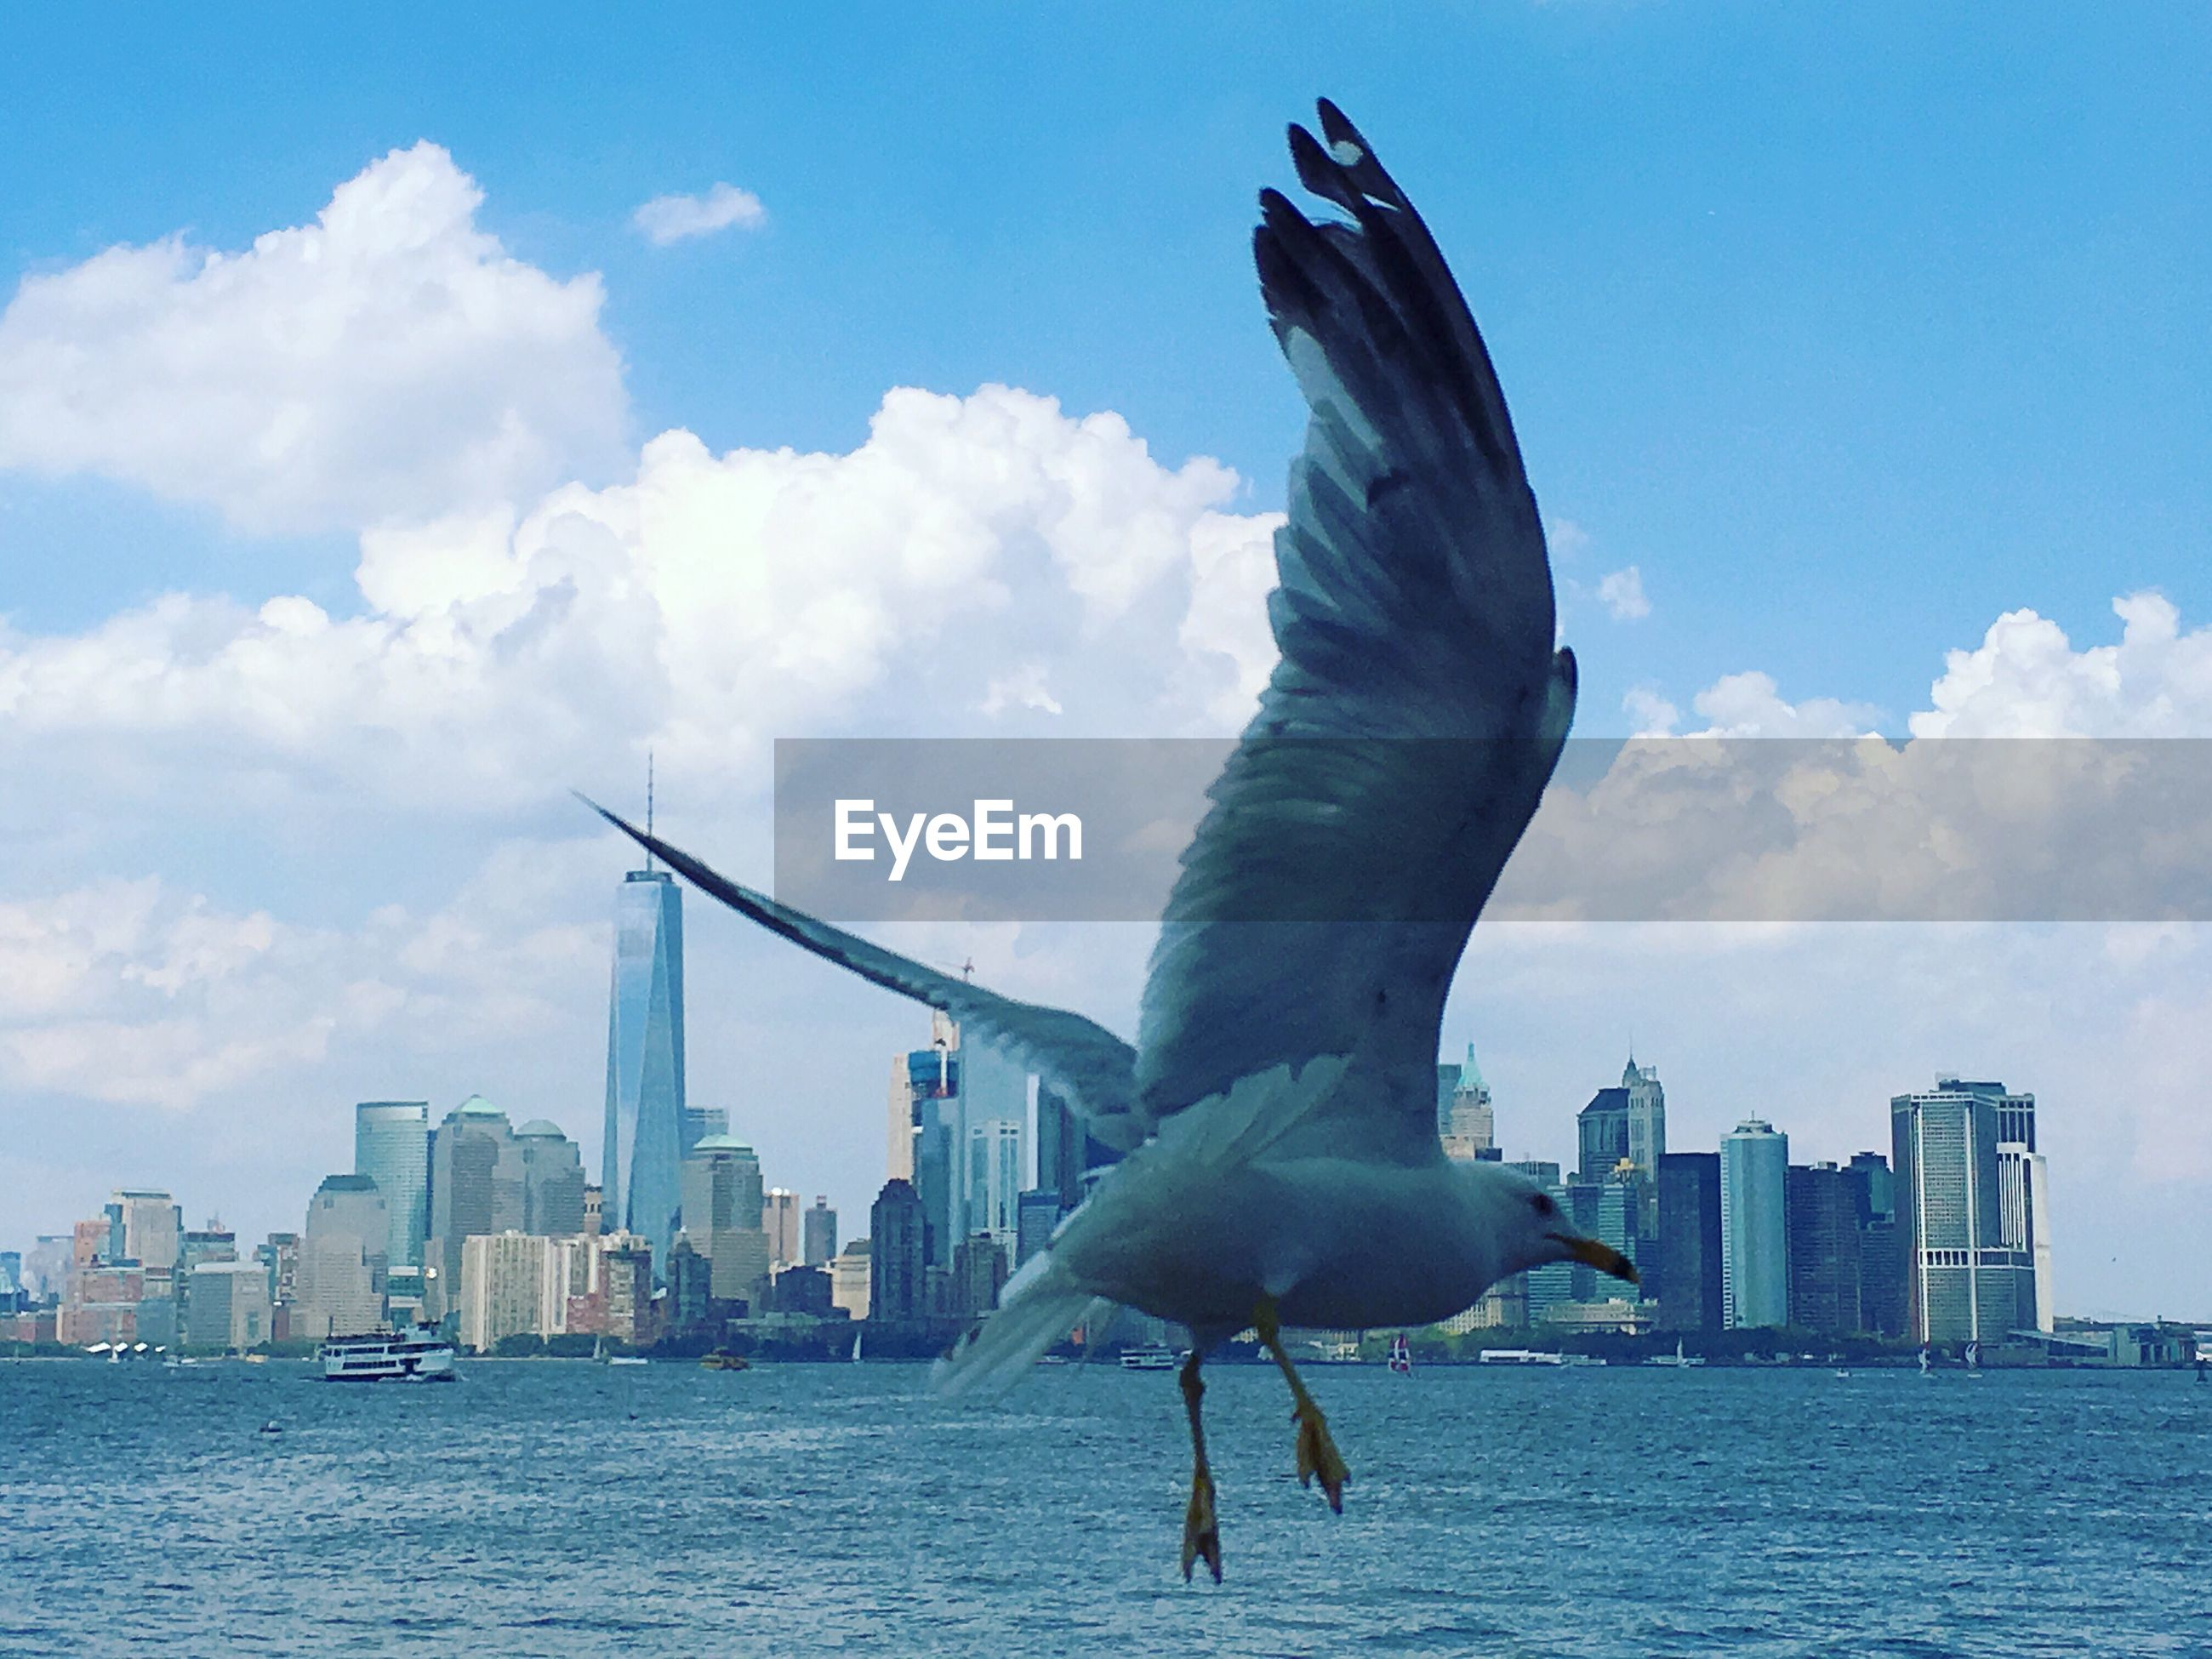 Seagull flying over sea with cityscape in background